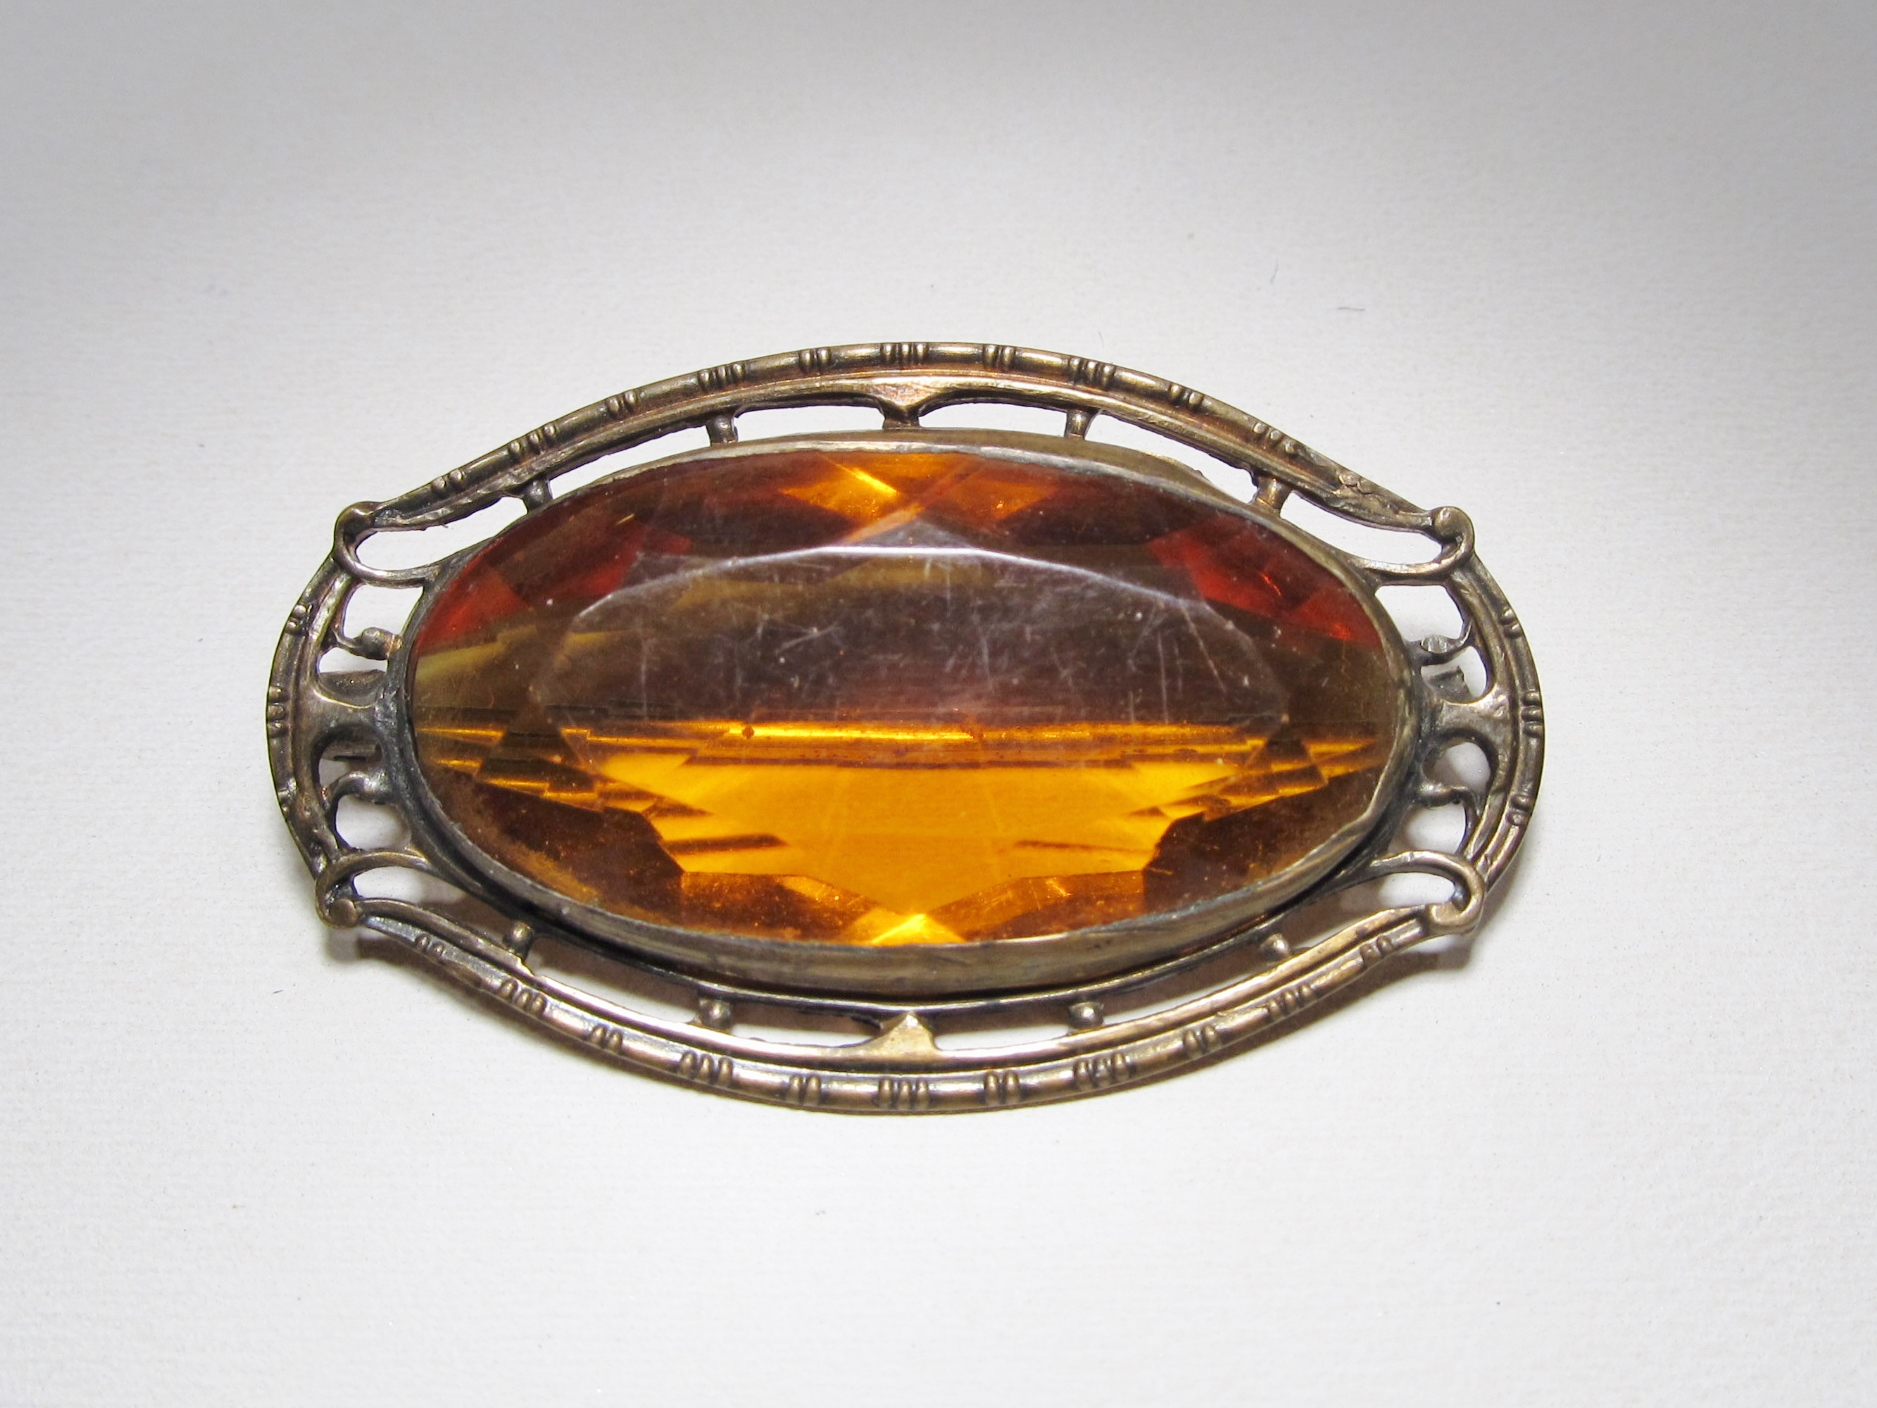 vintage amber colored glass brooch gold tone setting wc 293 decatur coin and jewelry. Black Bedroom Furniture Sets. Home Design Ideas